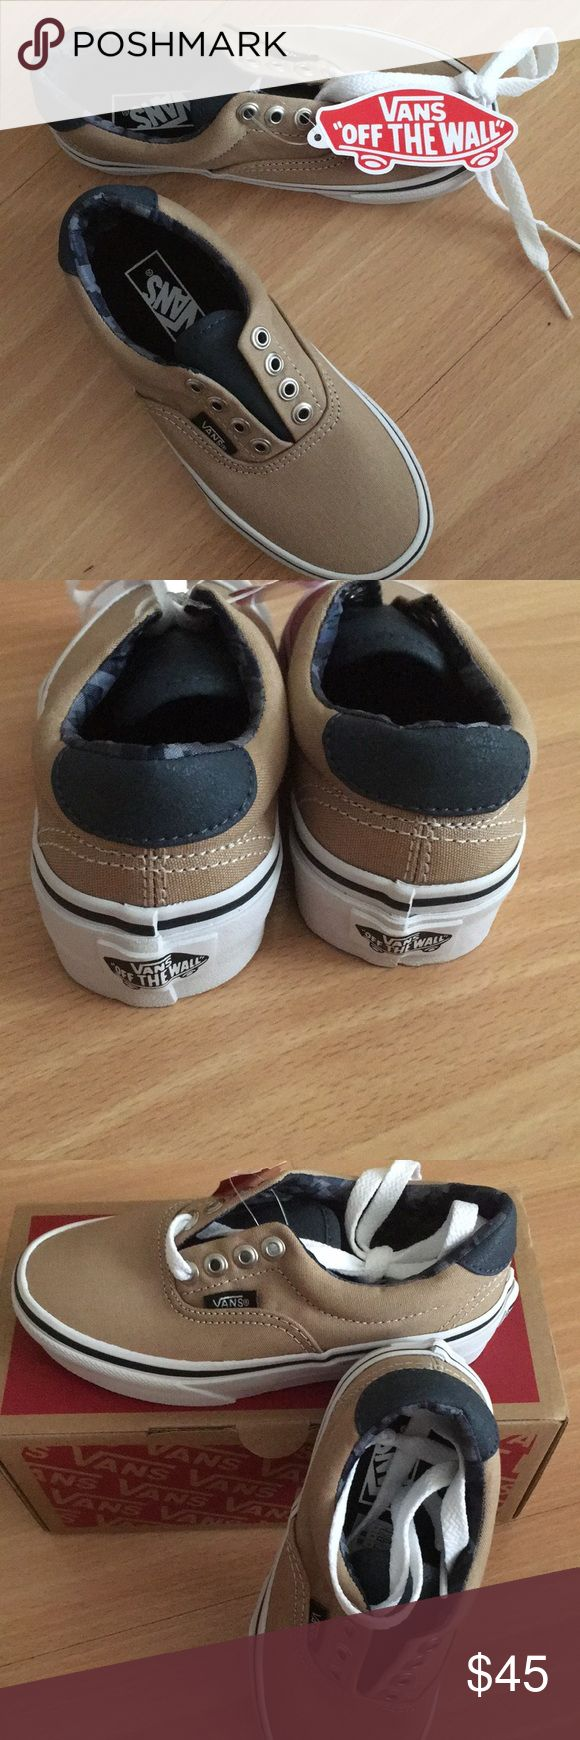 Brand new, never been used! Stylish boys vans shoes. Vans Shoes Sneakers